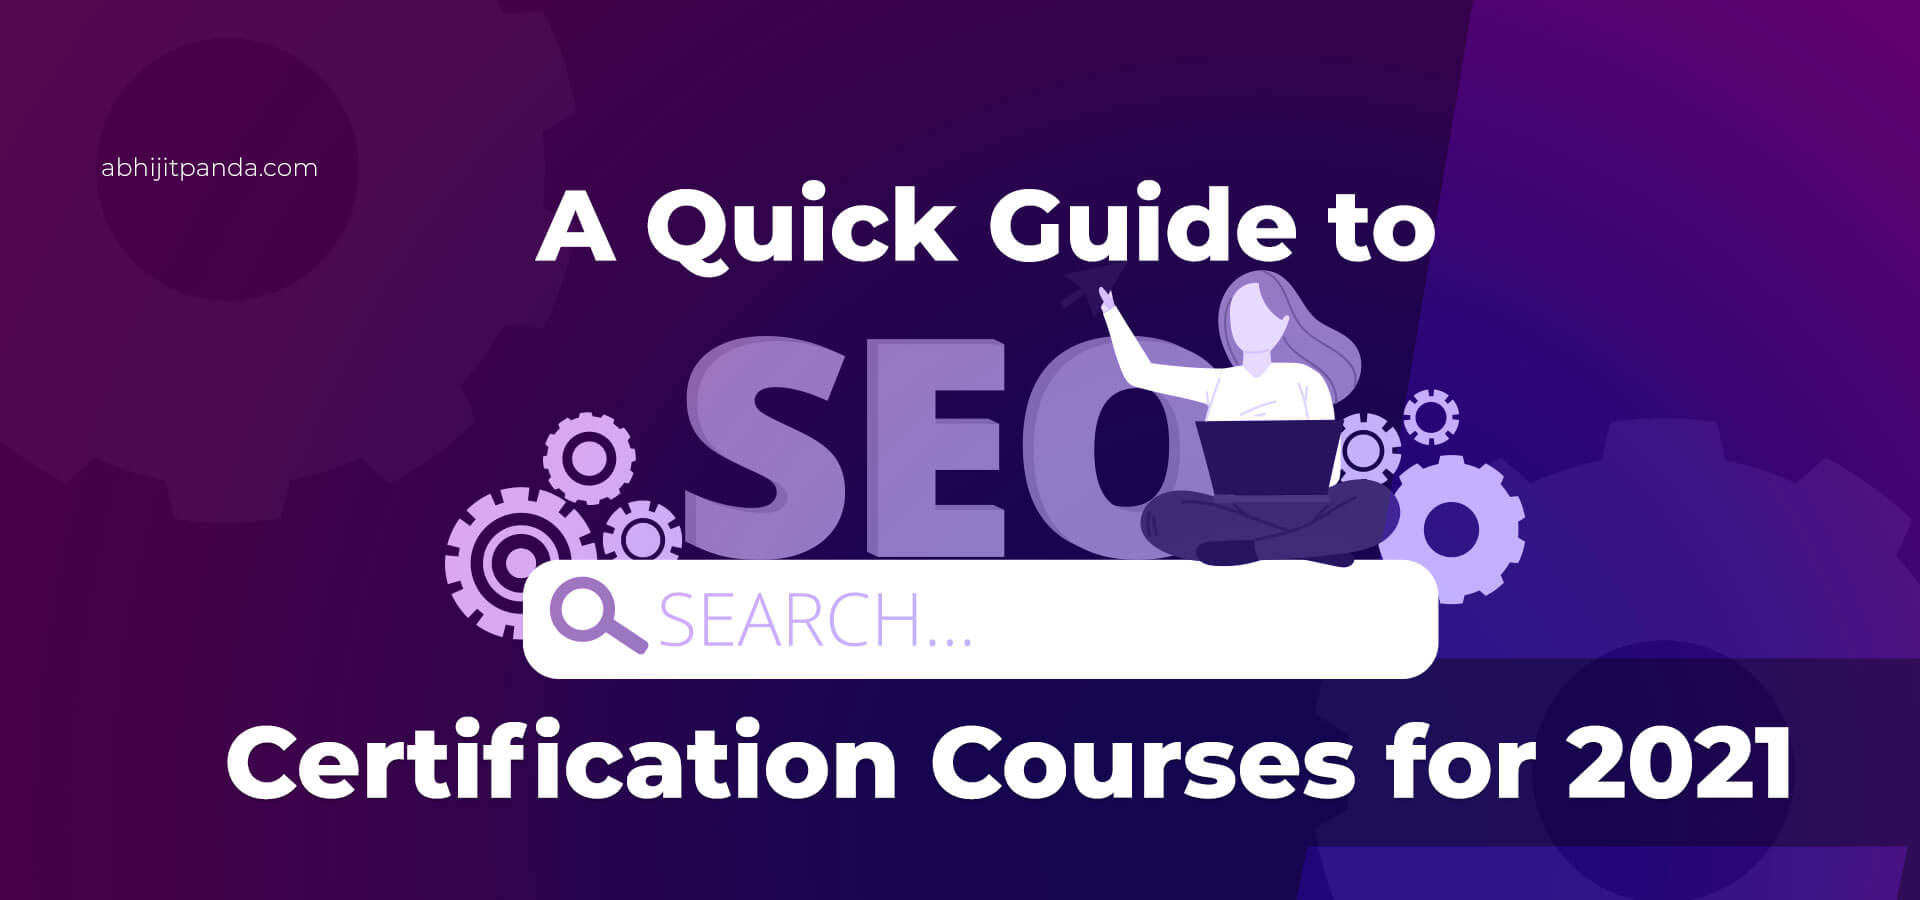 A Quick Guide to SEO Certification Courses